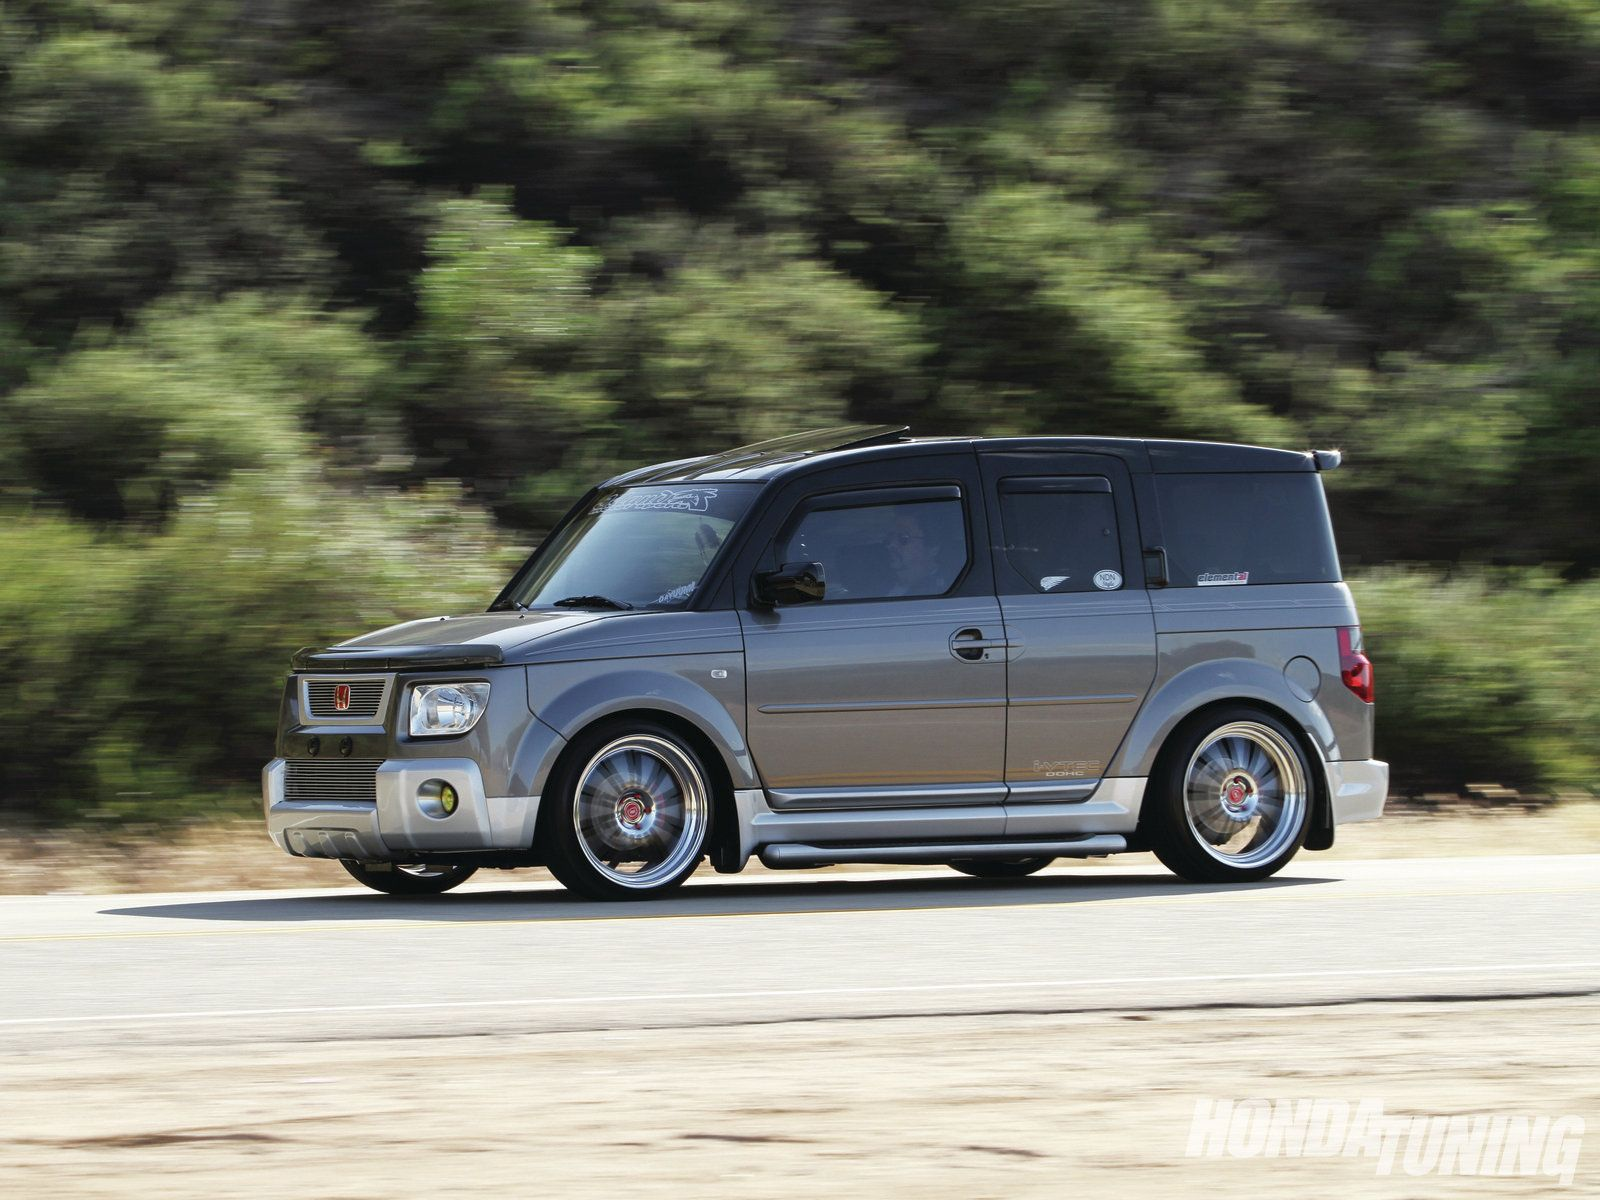 Photo 1 / 8 | Phillip Demark's custom 2005 Honda Element EX